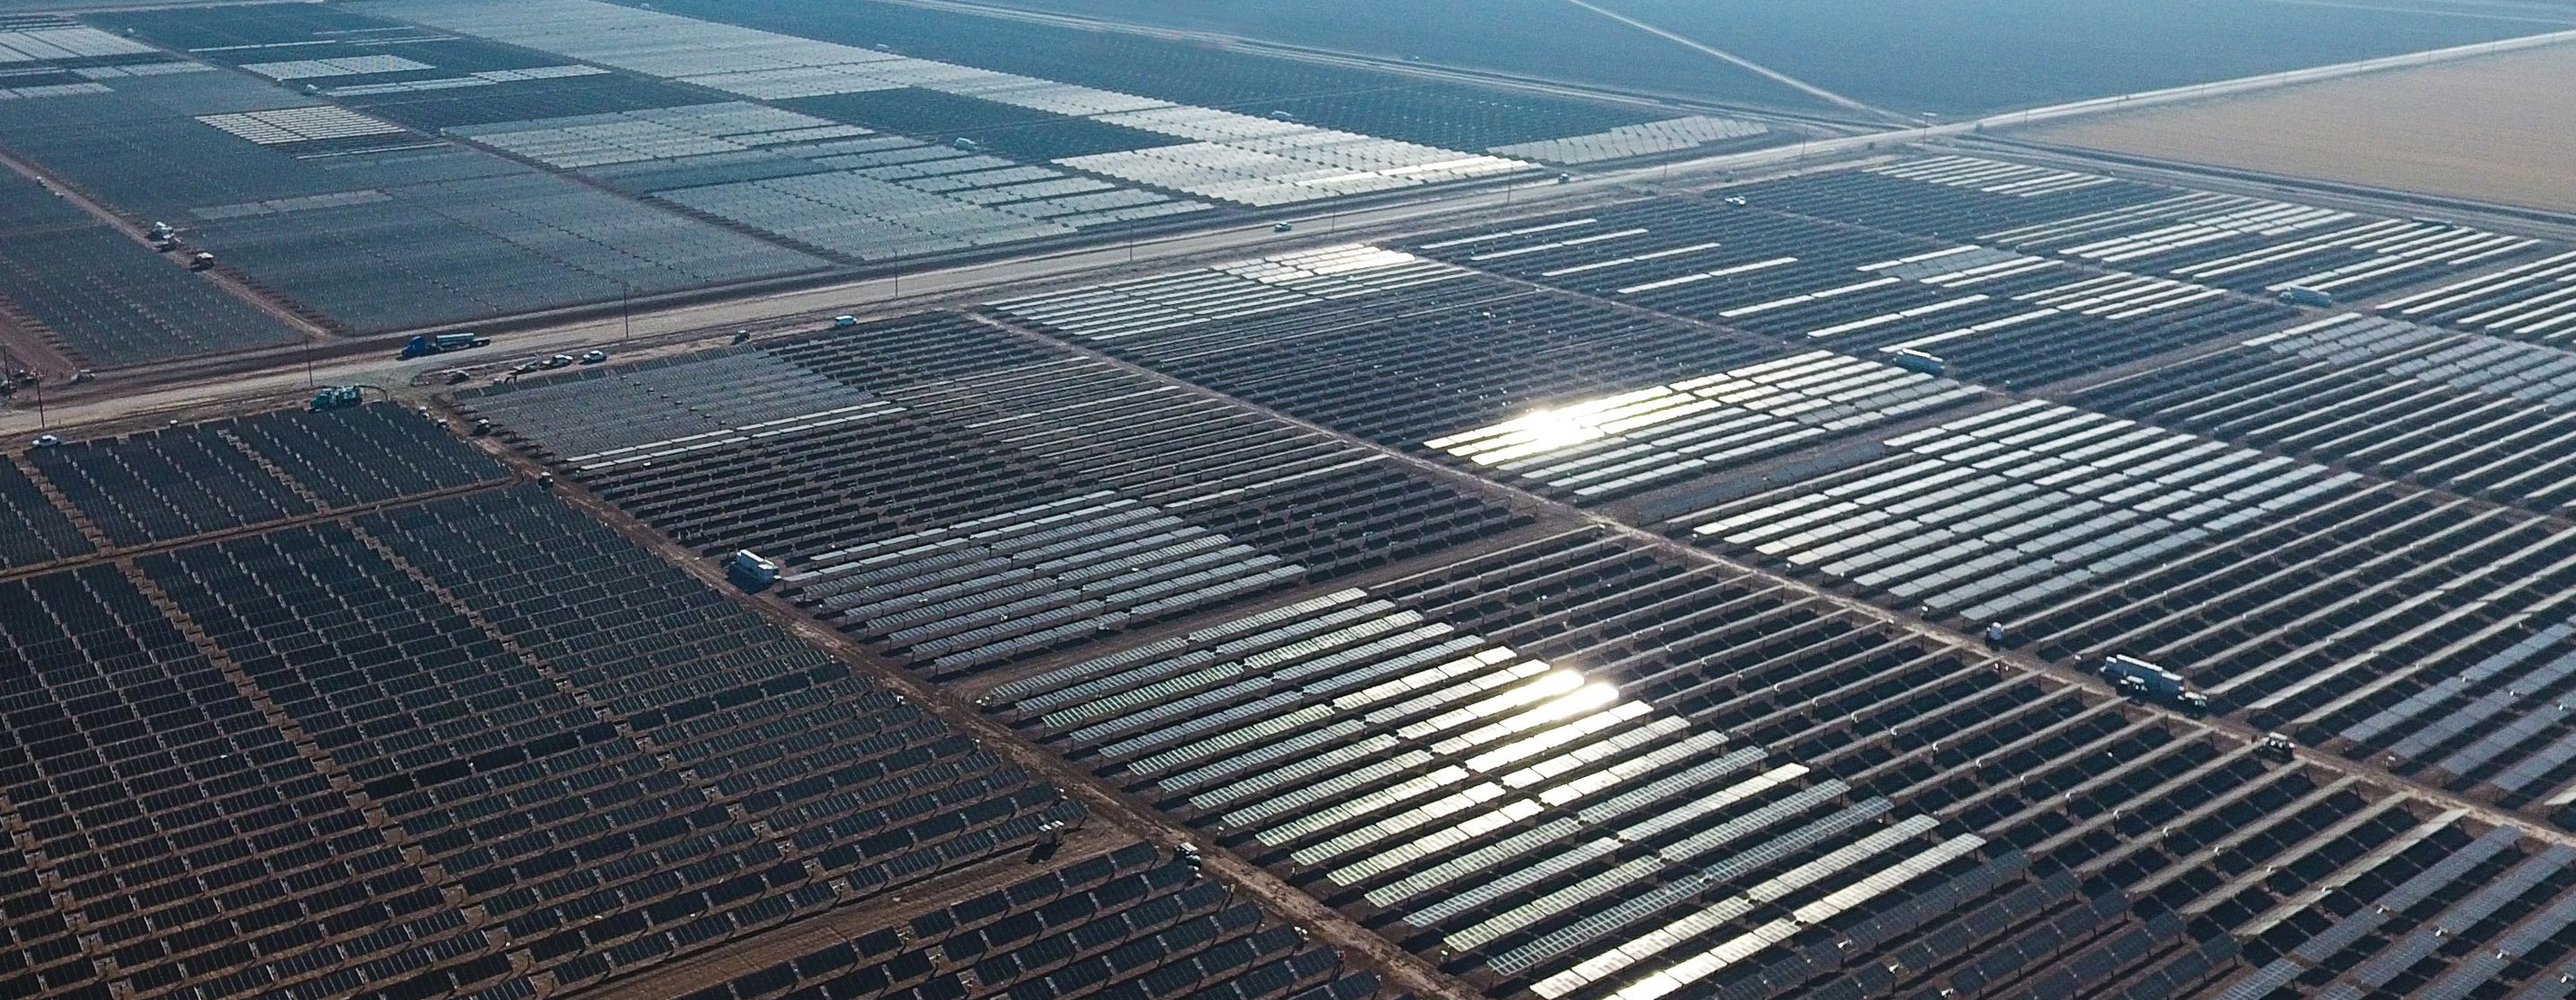 Solar Frontier Americas Completes The Sale Of 40 MW Solar Project To Dominion